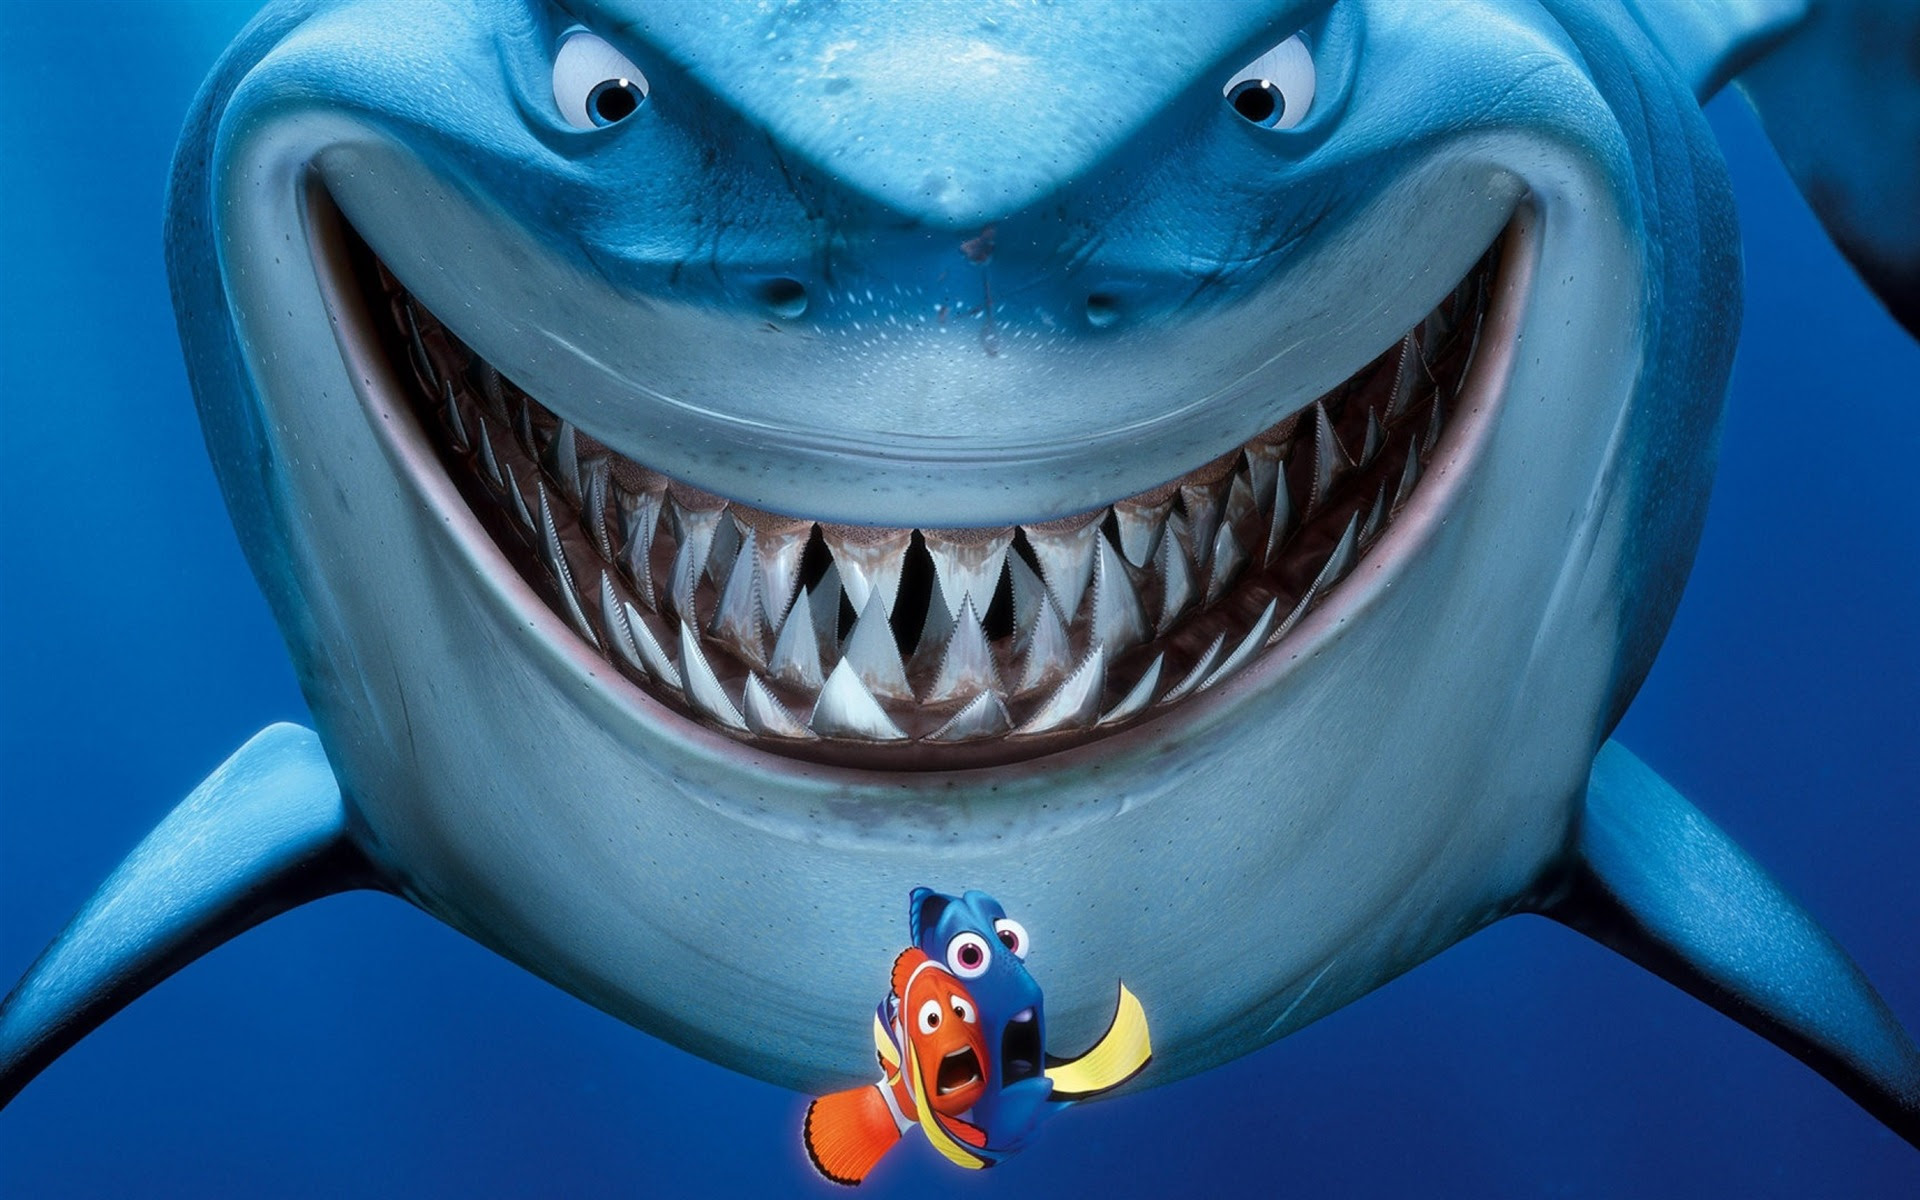 Finding Nemo 3d Animasi Hd Wallpaper 3d And Abstract Wallpaper